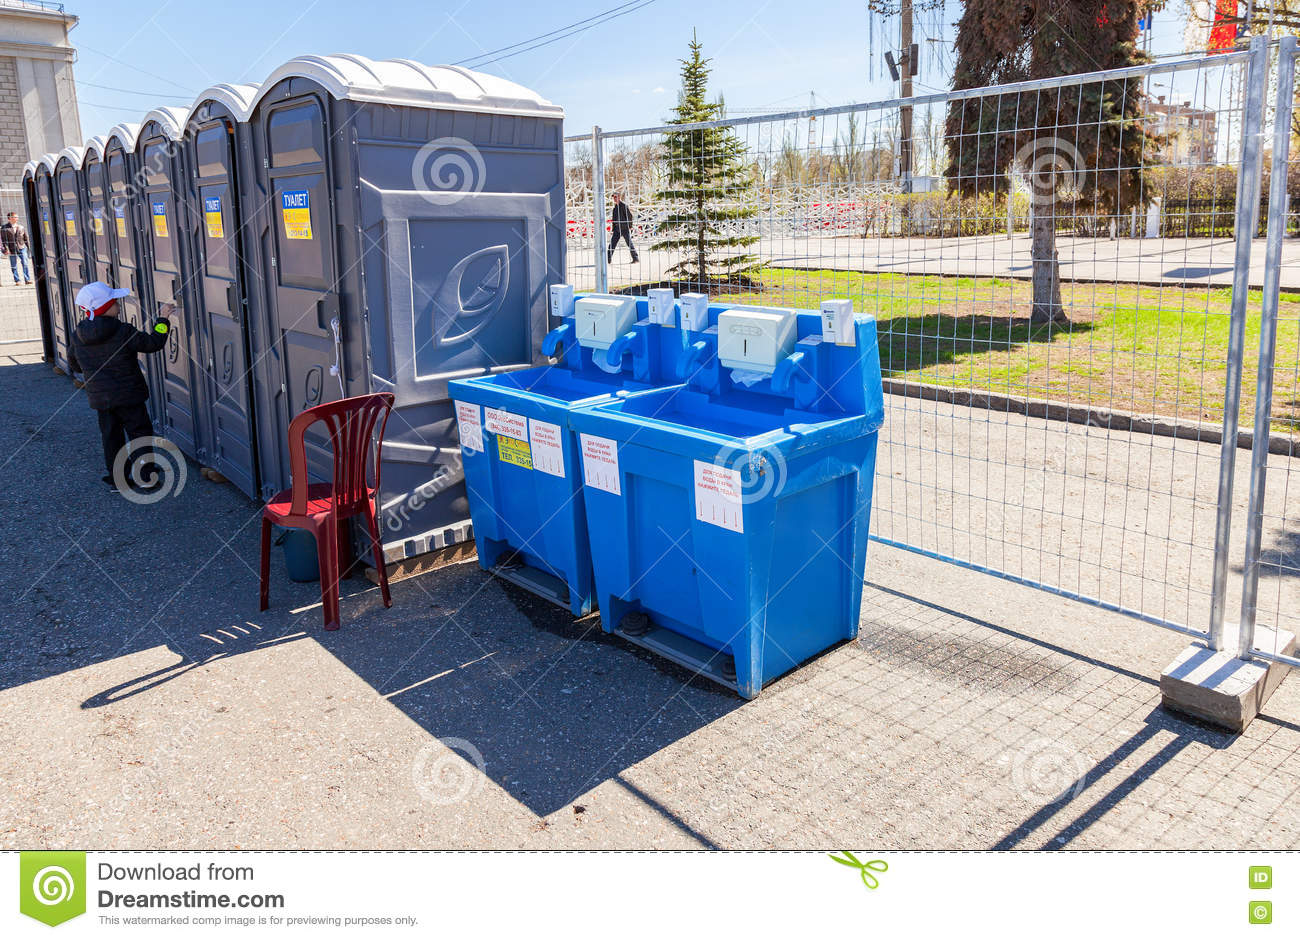 Mobile Public Toilets And Equipment For Washing Hands At The Cen ...